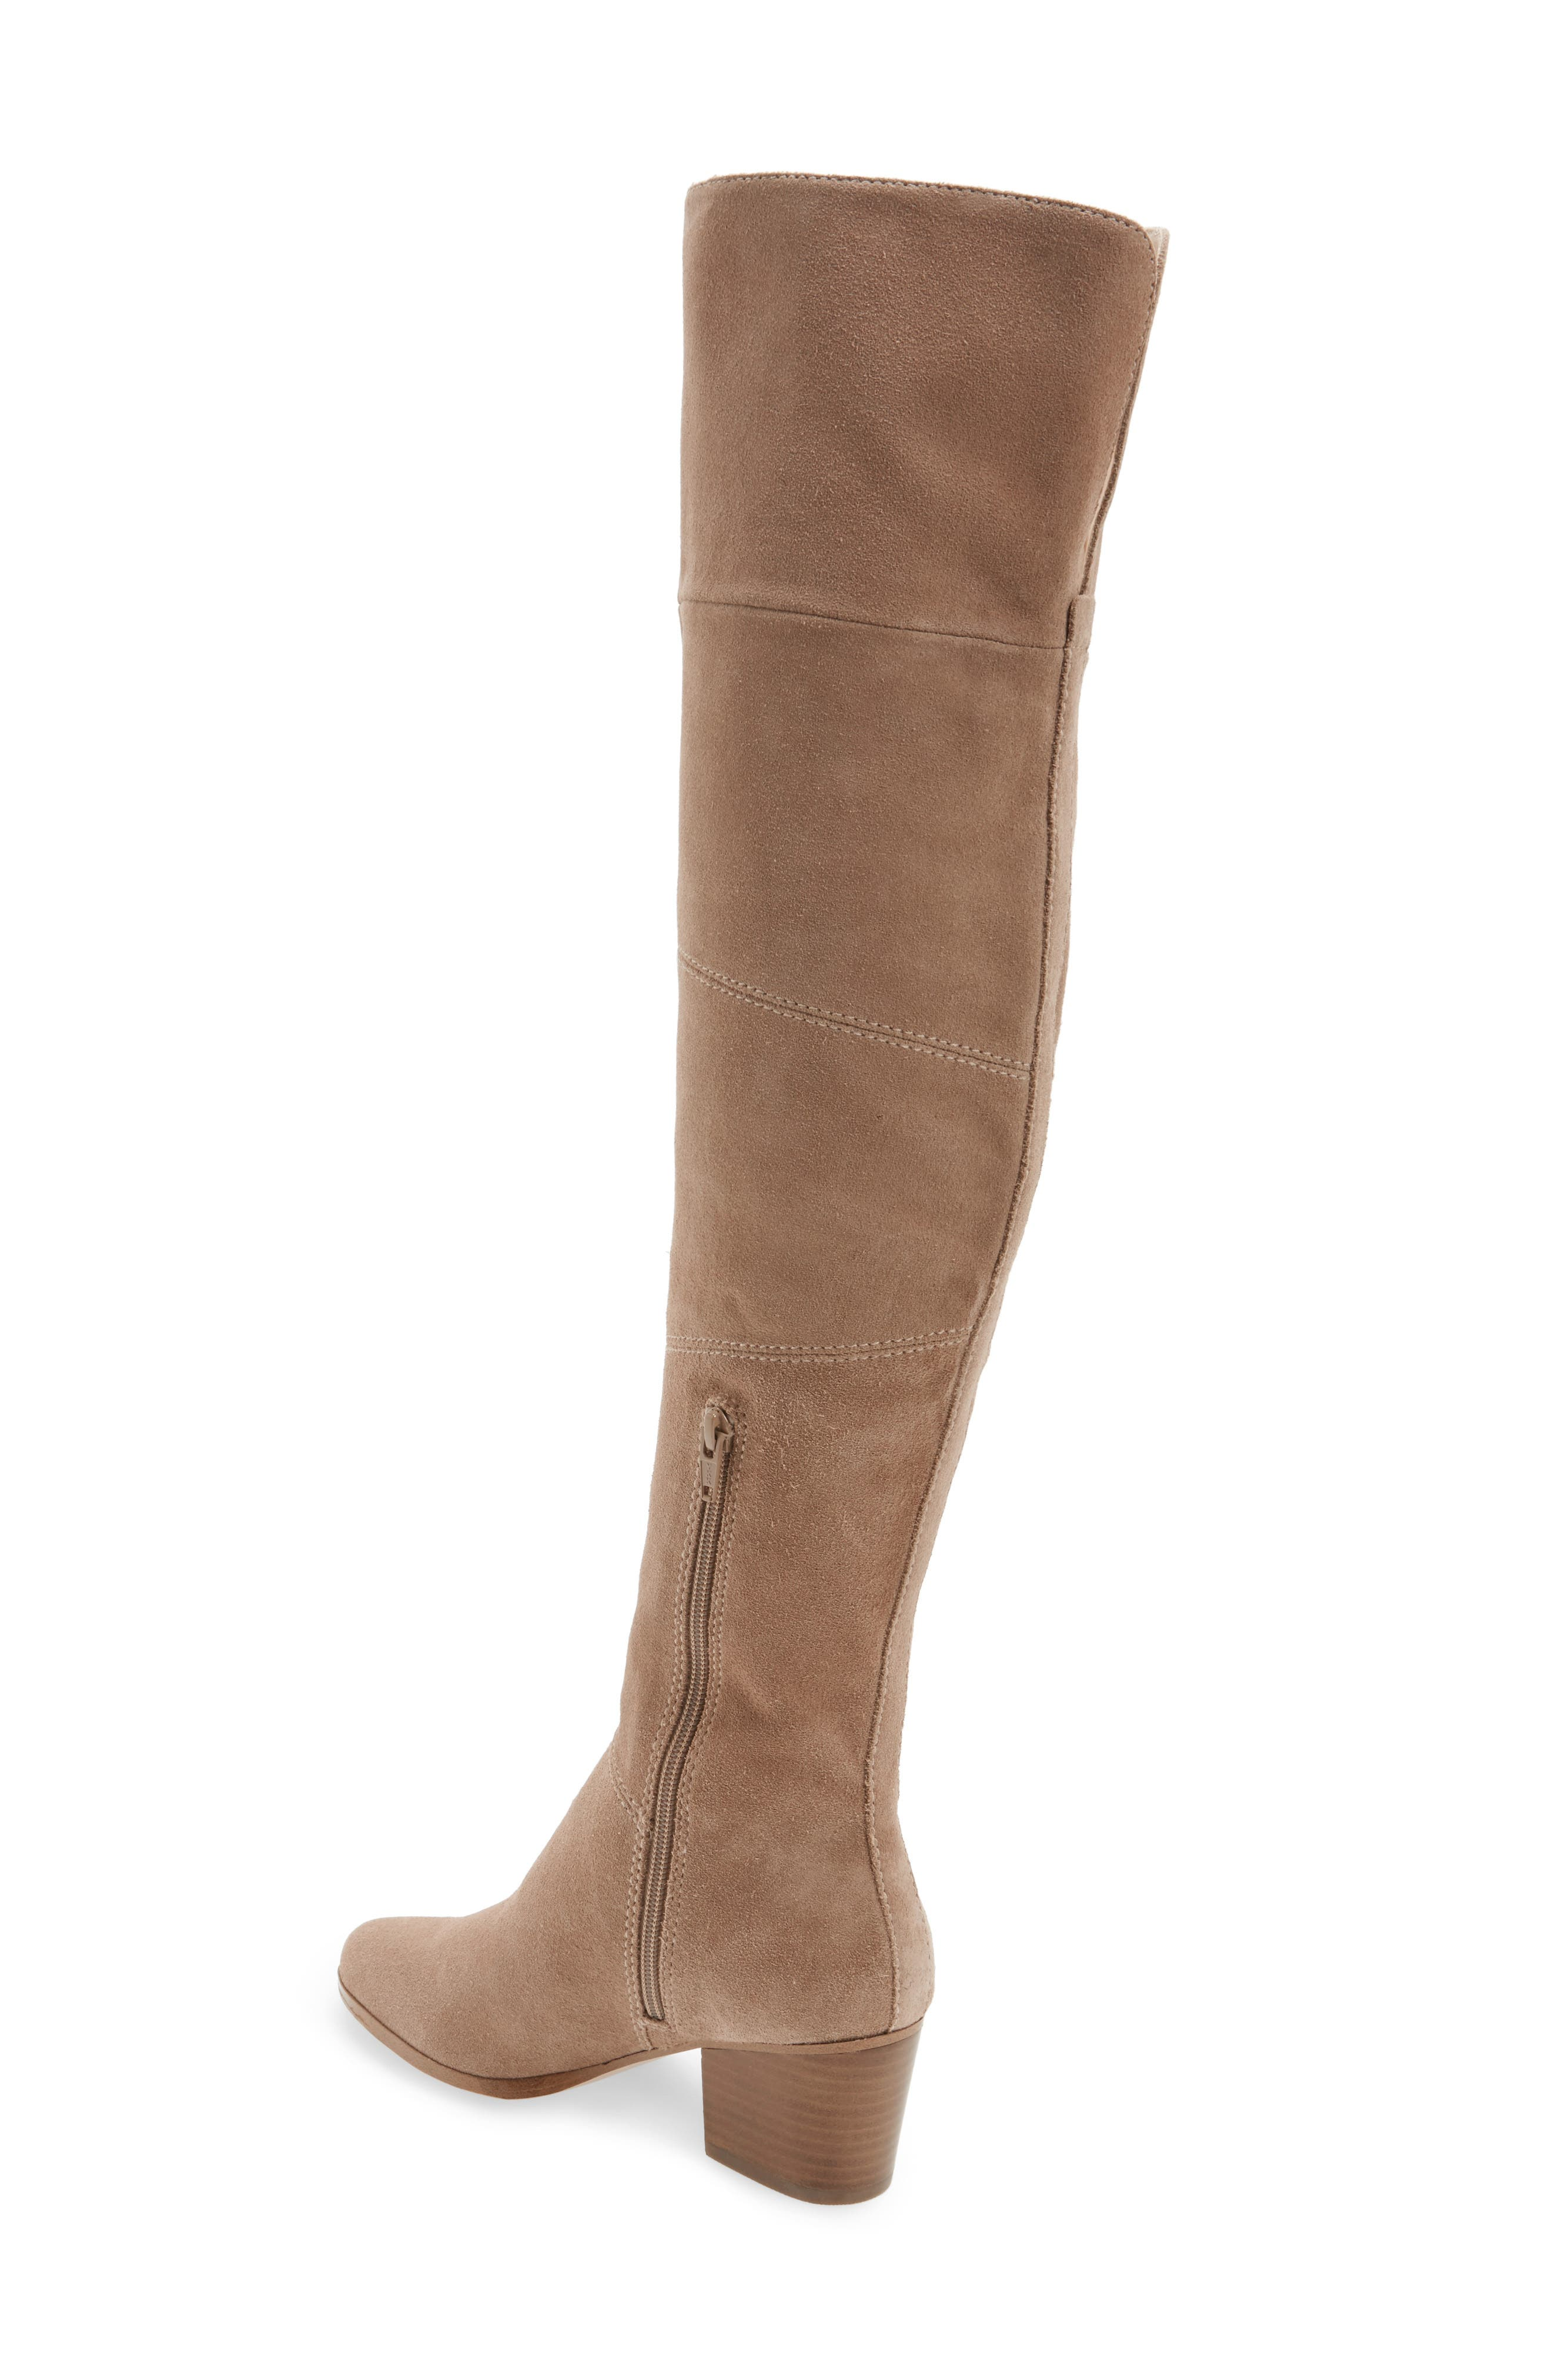 Melbourne Over the Knee Boot,                             Alternate thumbnail 2, color,                             Night Taupe Suede